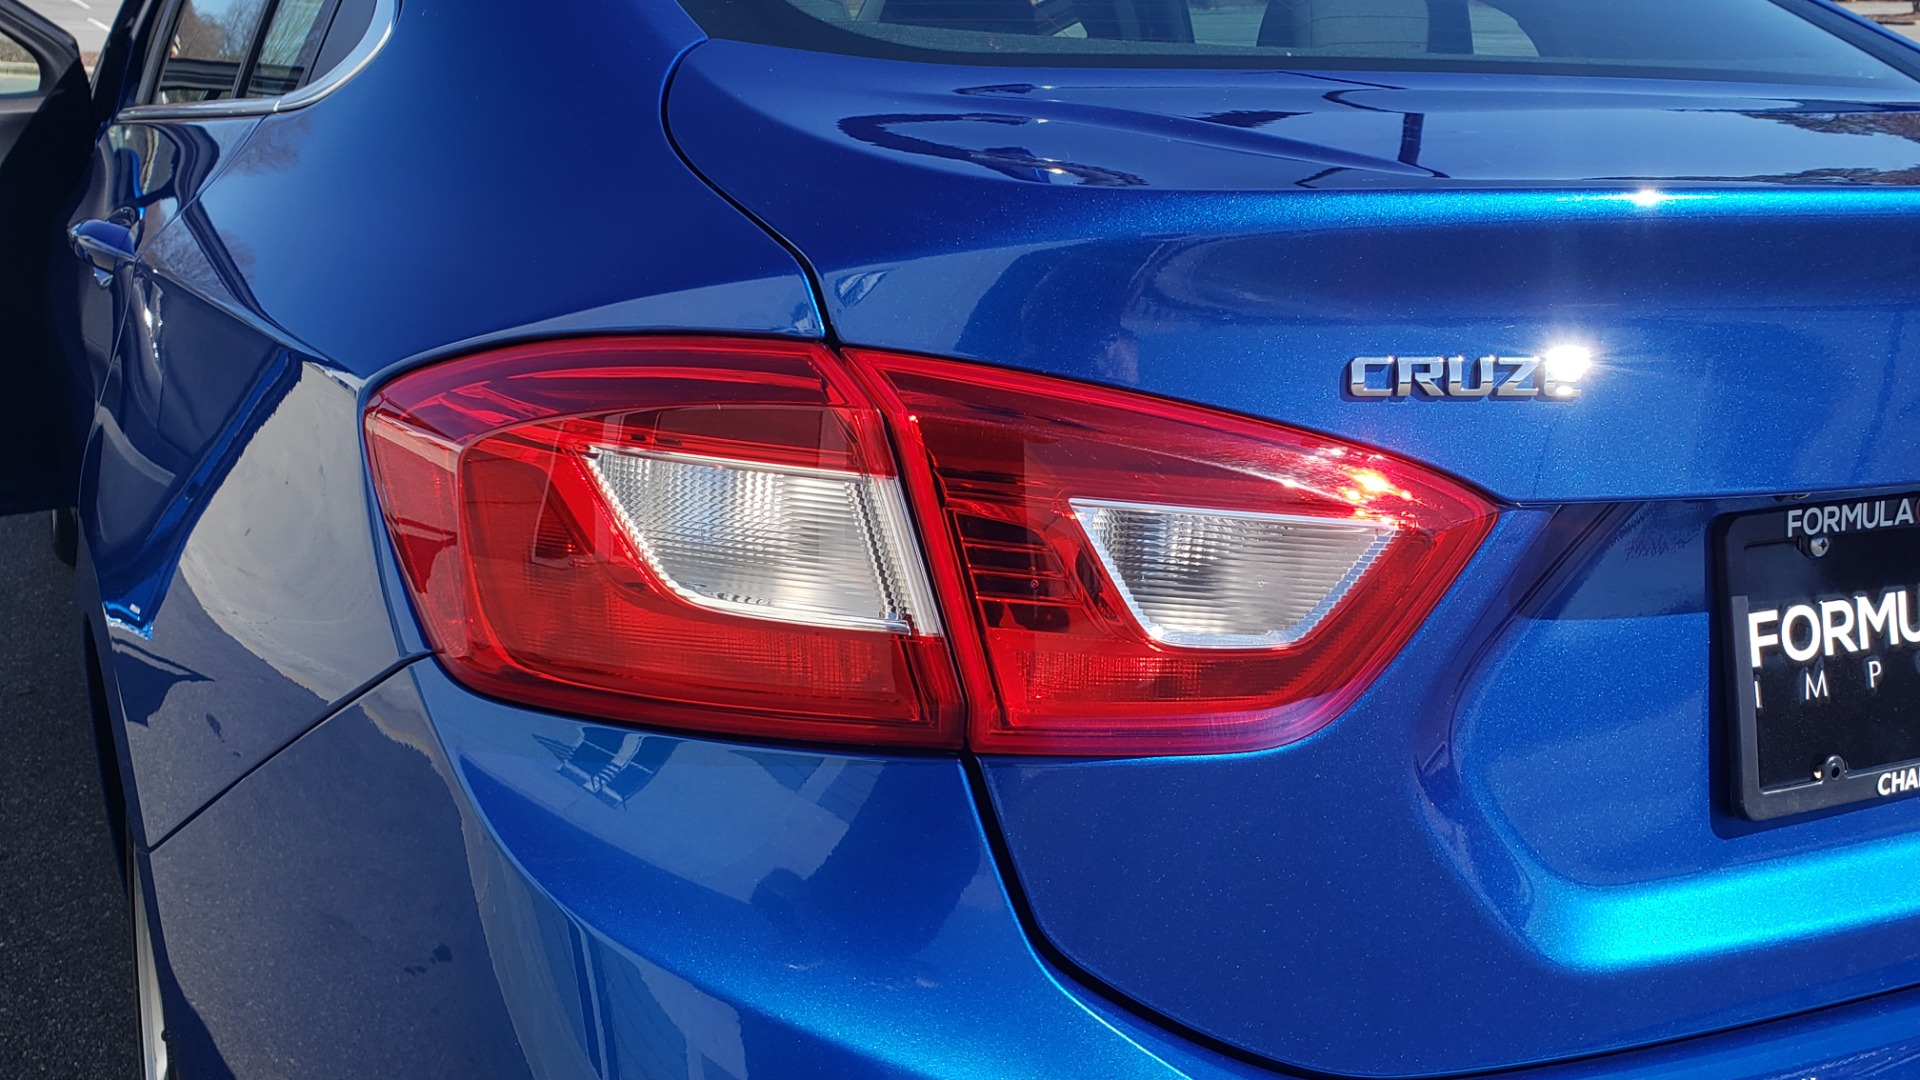 Used 2017 Chevrolet CRUZE LT 1.4L 1SD / 6-SPD AUTO / HTS STS / REMOTE START / REARVIEW for sale $11,495 at Formula Imports in Charlotte NC 28227 17